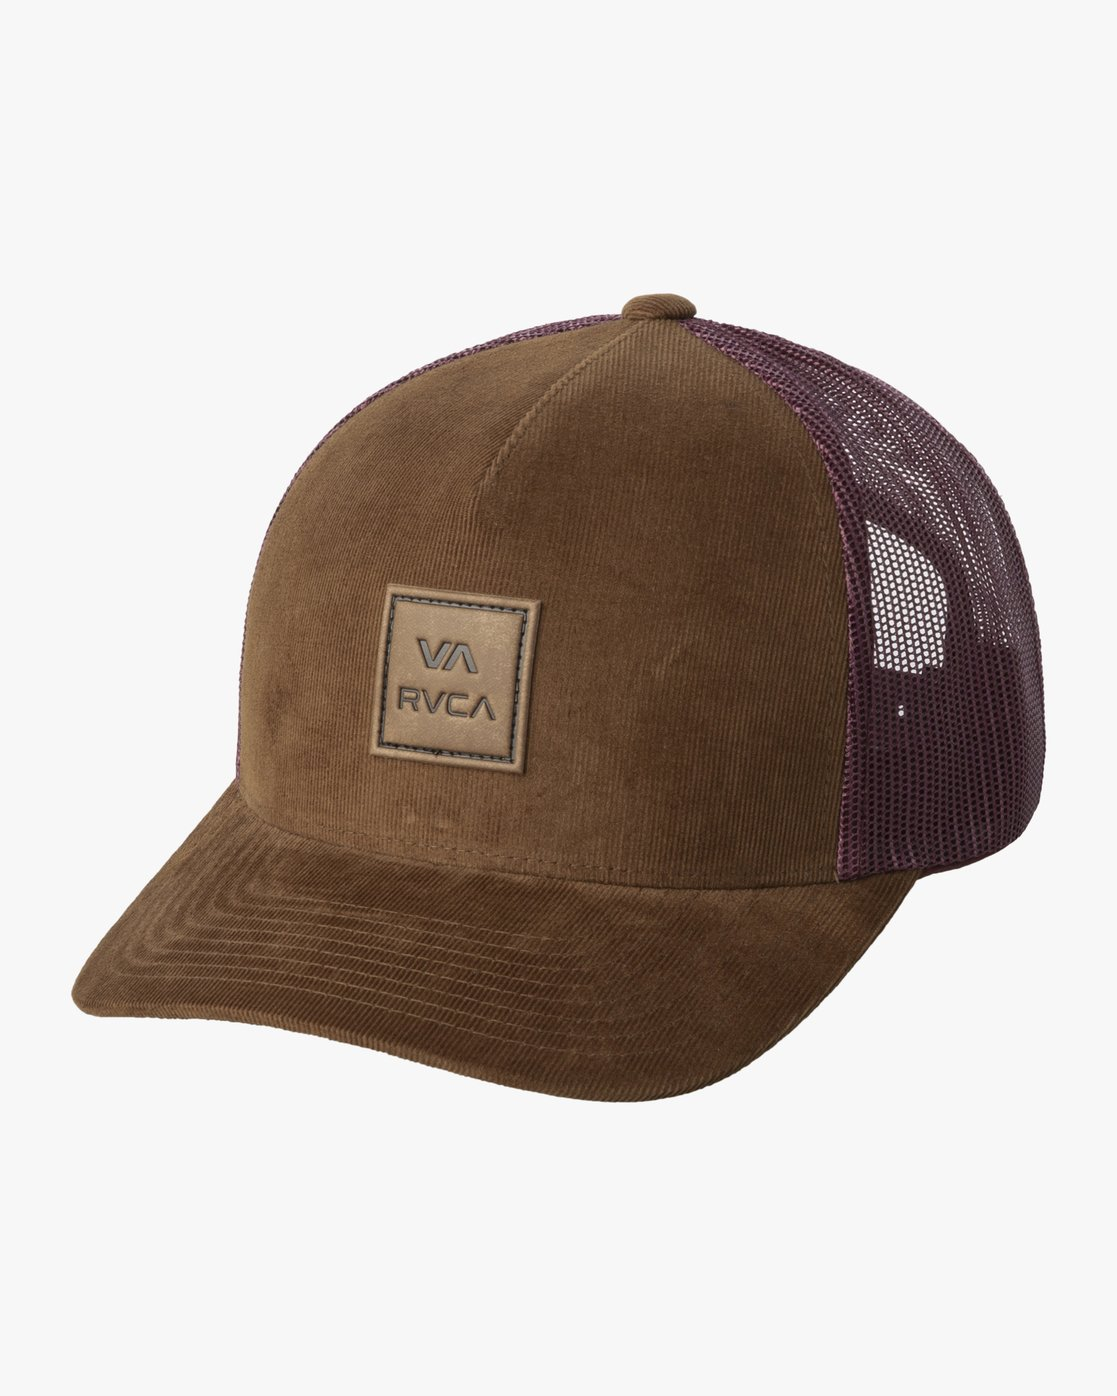 0 VA ATW CURVED BRIM TRUCKER HAT Brown MAHWPRVA RVCA